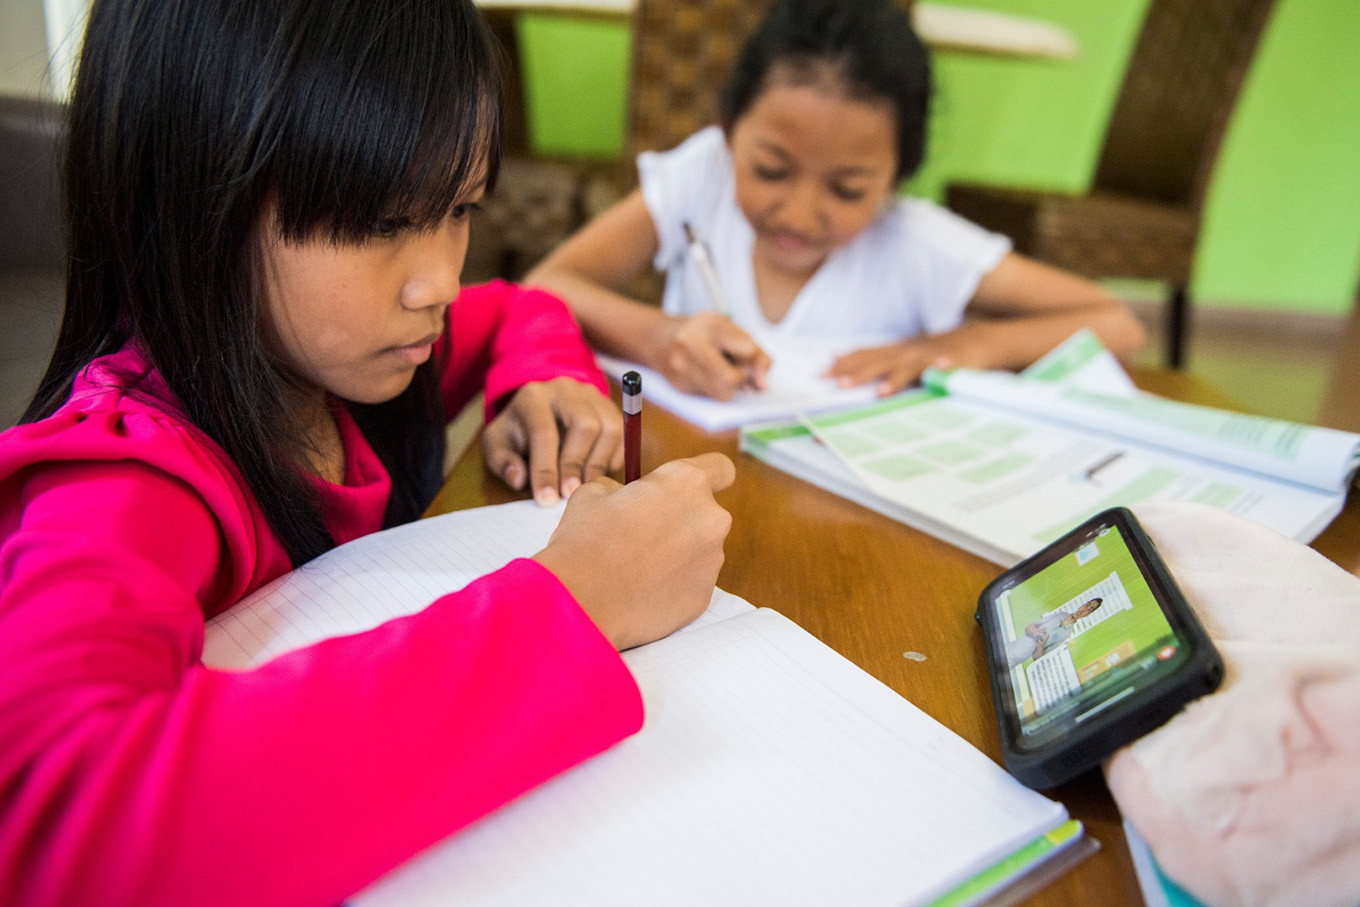 Remote learning hampered by lack of student-teacher interaction, KPAI survey finds